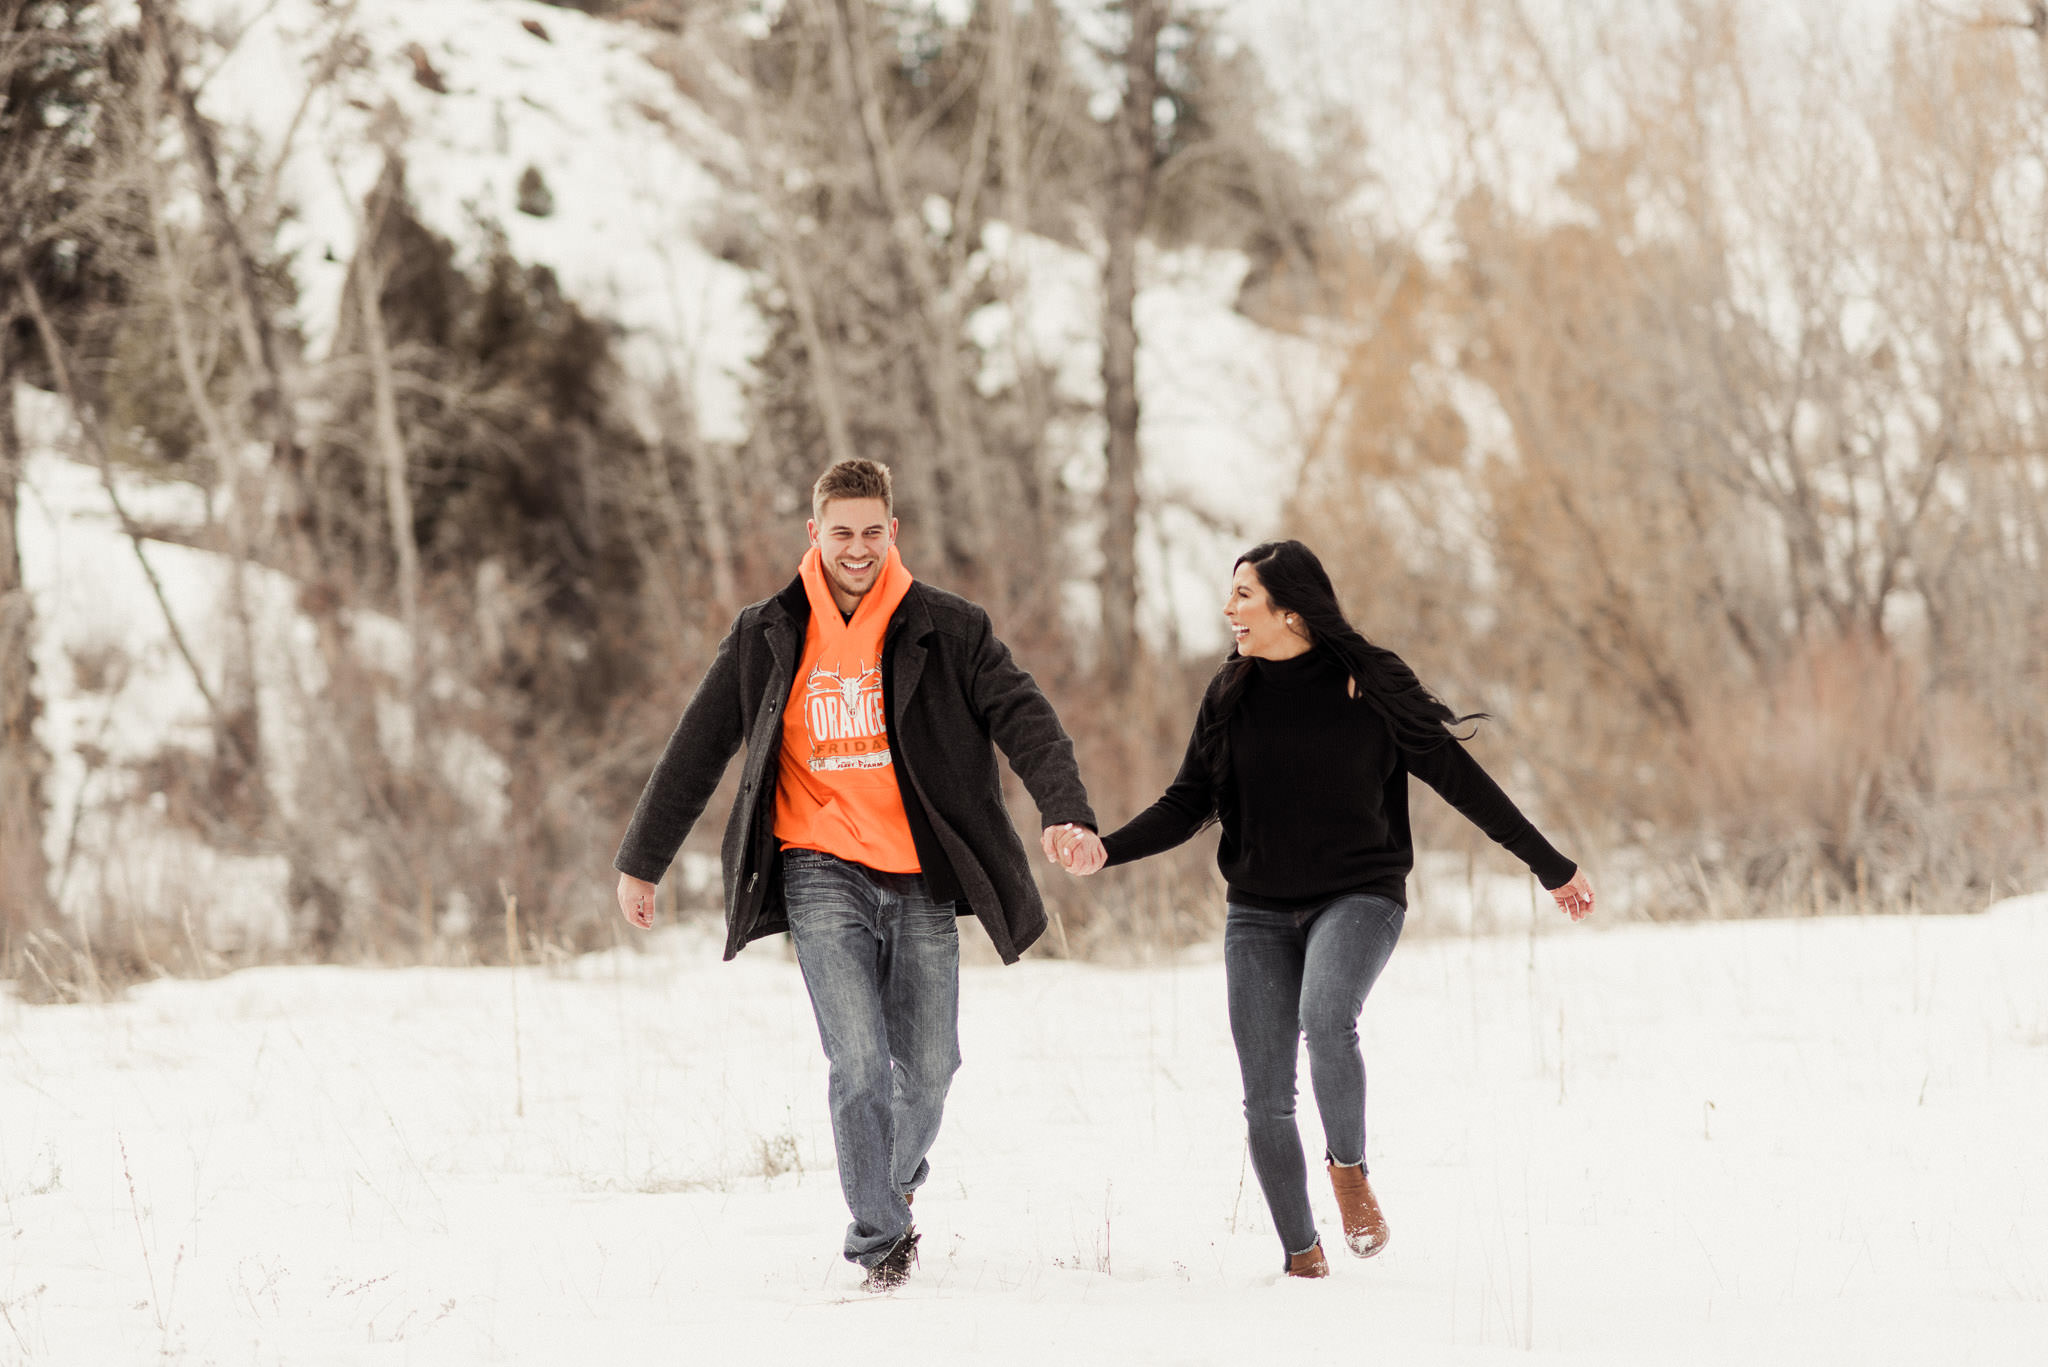 sandra-ryan-colorado-winter-snow-engagement-couples-valentines-red-houston-photographer-sm-35.jpg